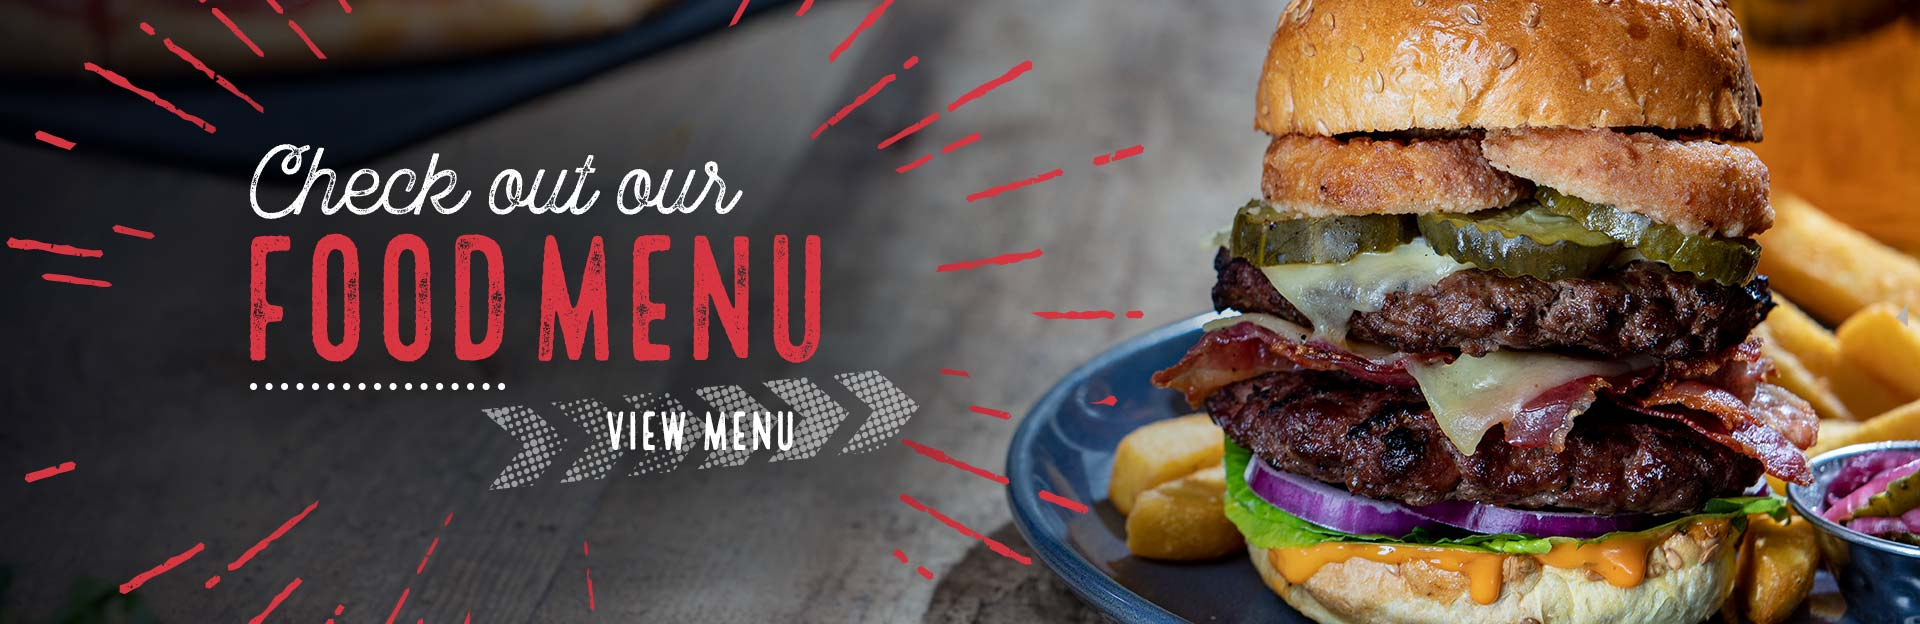 New Menu at O'Neills Clapham